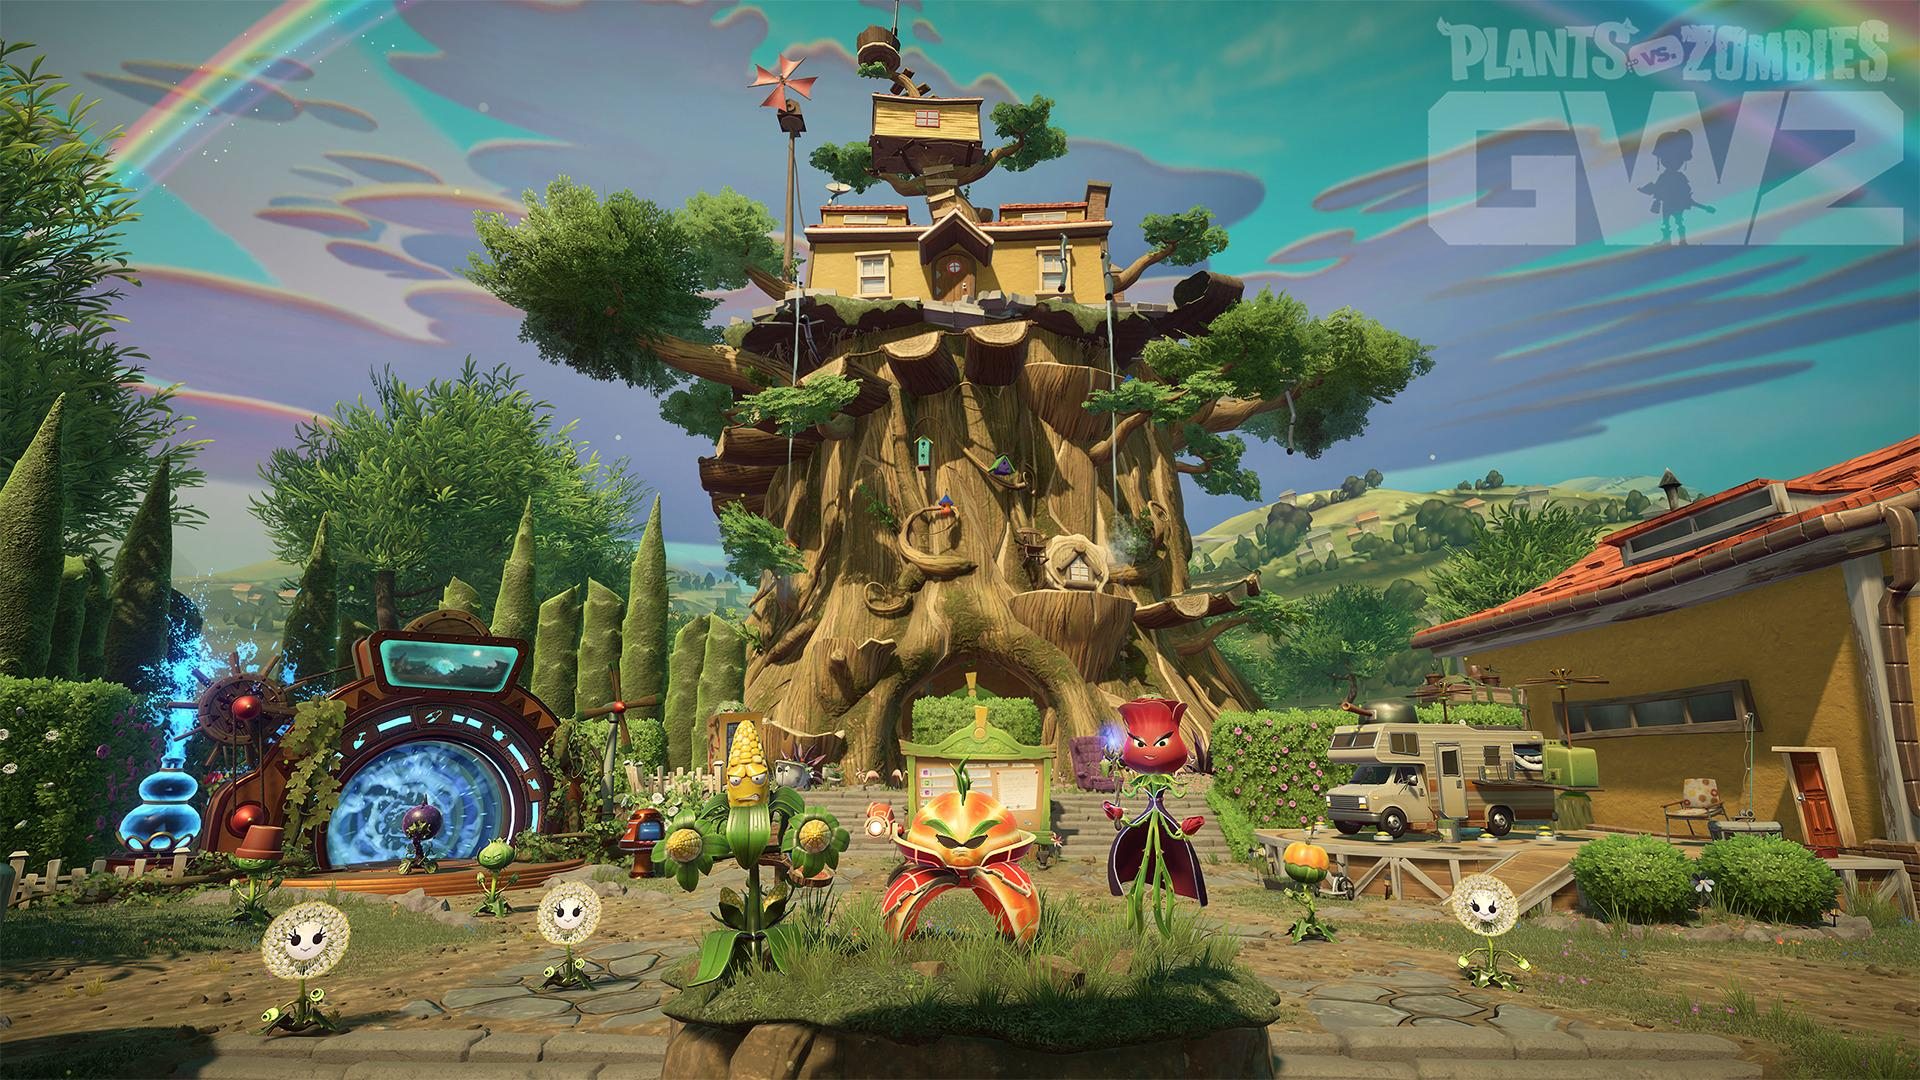 Backyard Battleground coming to Plants vs. Zombies Garden Warfare 2 ...